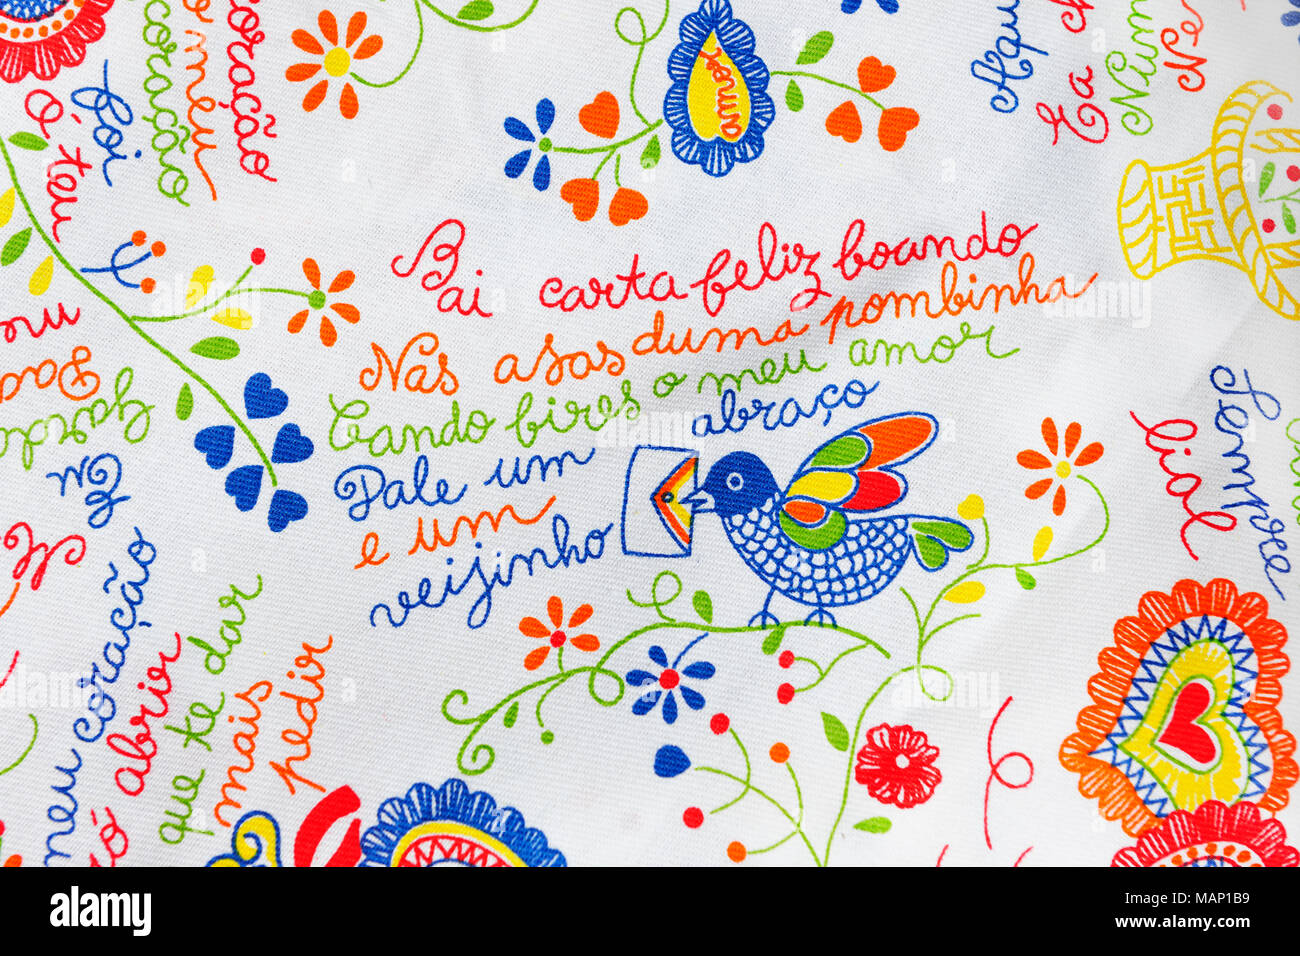 Serviette Portugal Serviette De Table Traditionnel Minho Viana Do Castelo Portugal